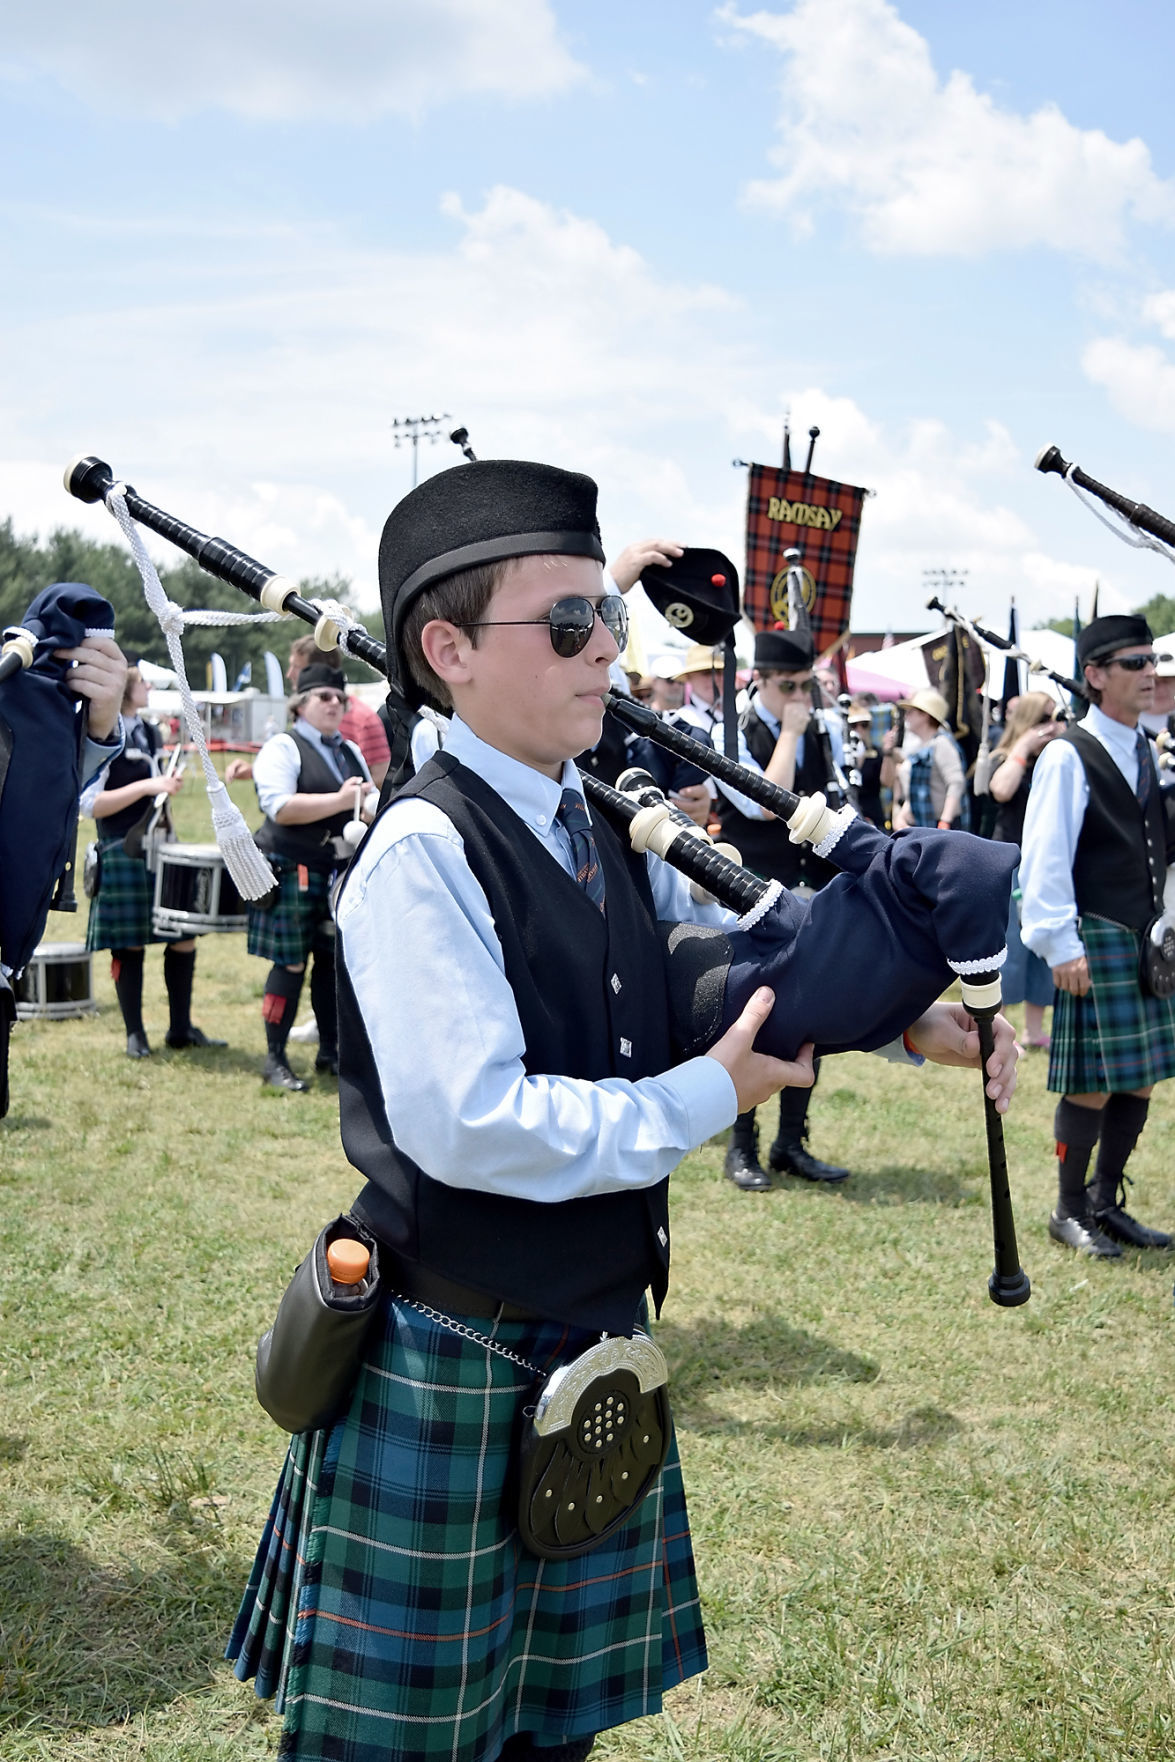 Scottish Festival & Games- Kyle MacIsac